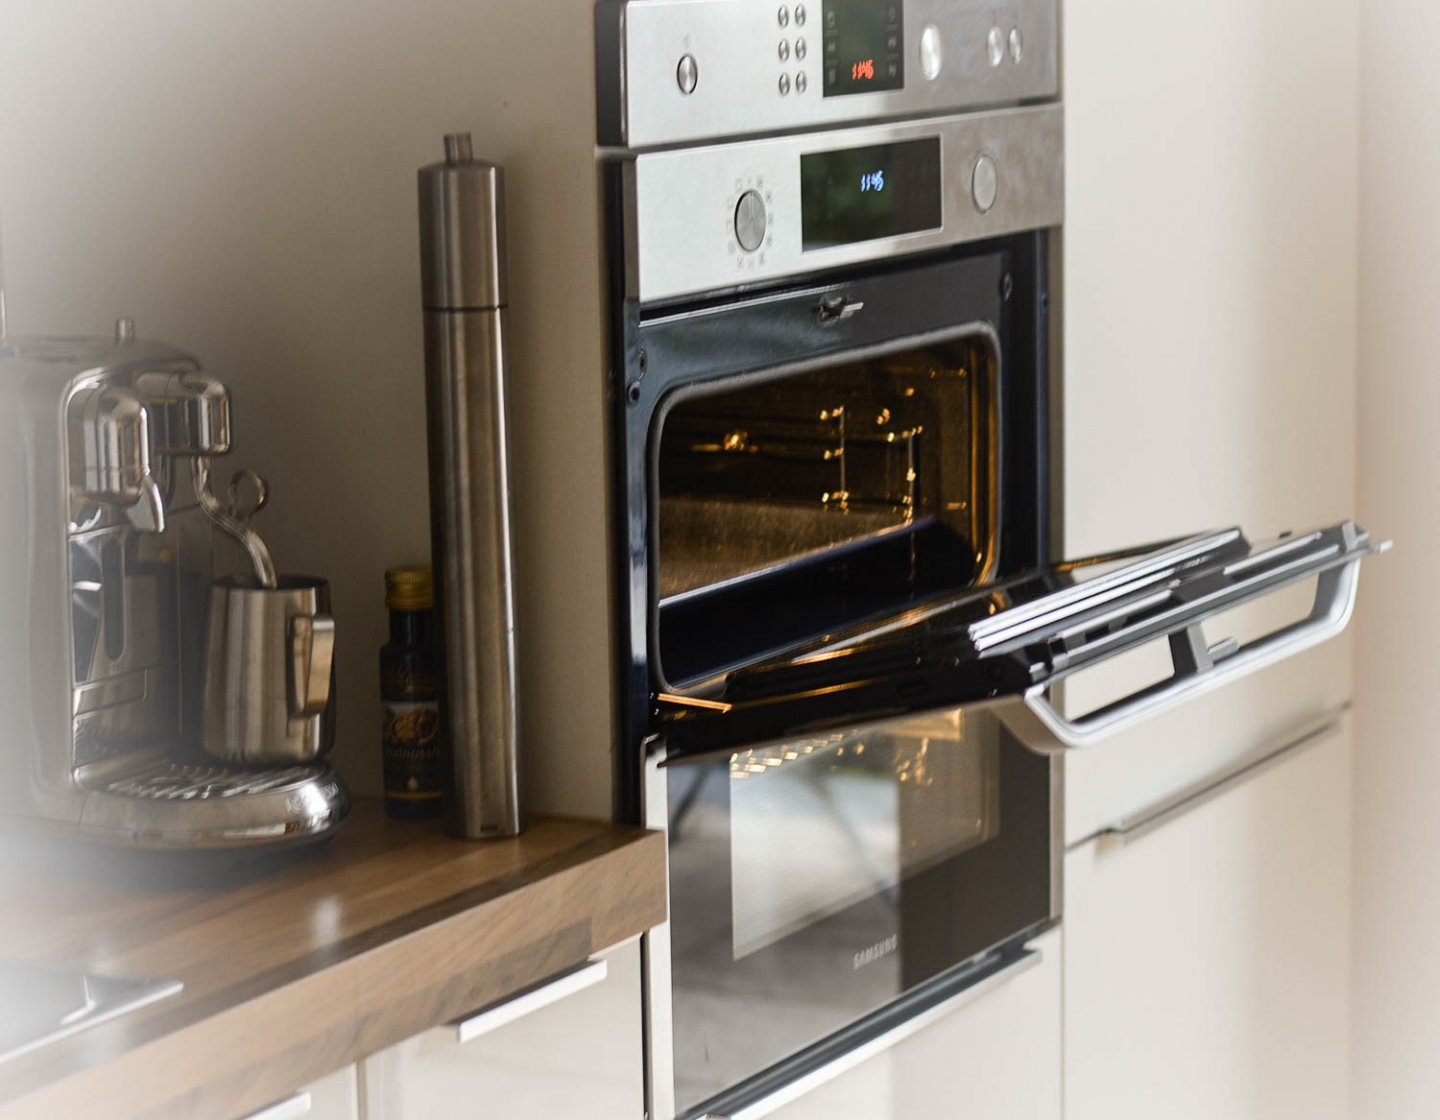 Samsung-Backofen-Dual-Cook-Flex-Produkttest-Kationette-Lifestyleblogger-Germany